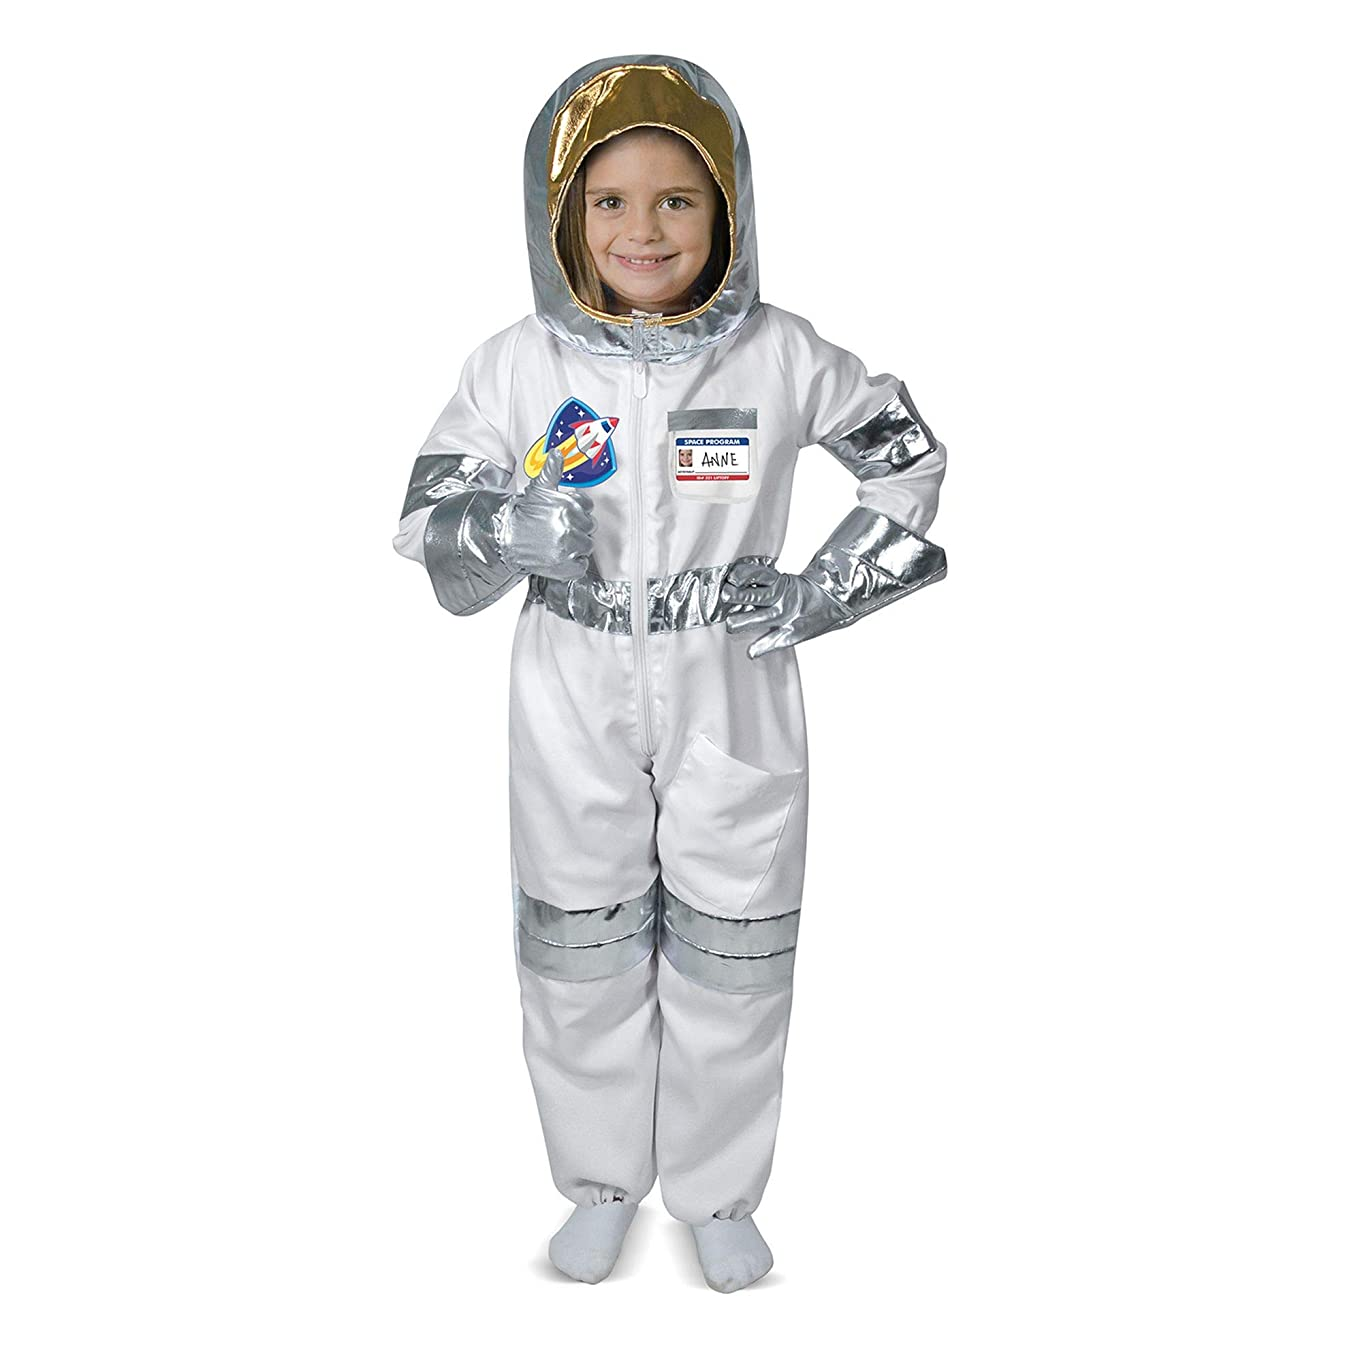 Children's Astronaut Role Play Set Costume for Kids